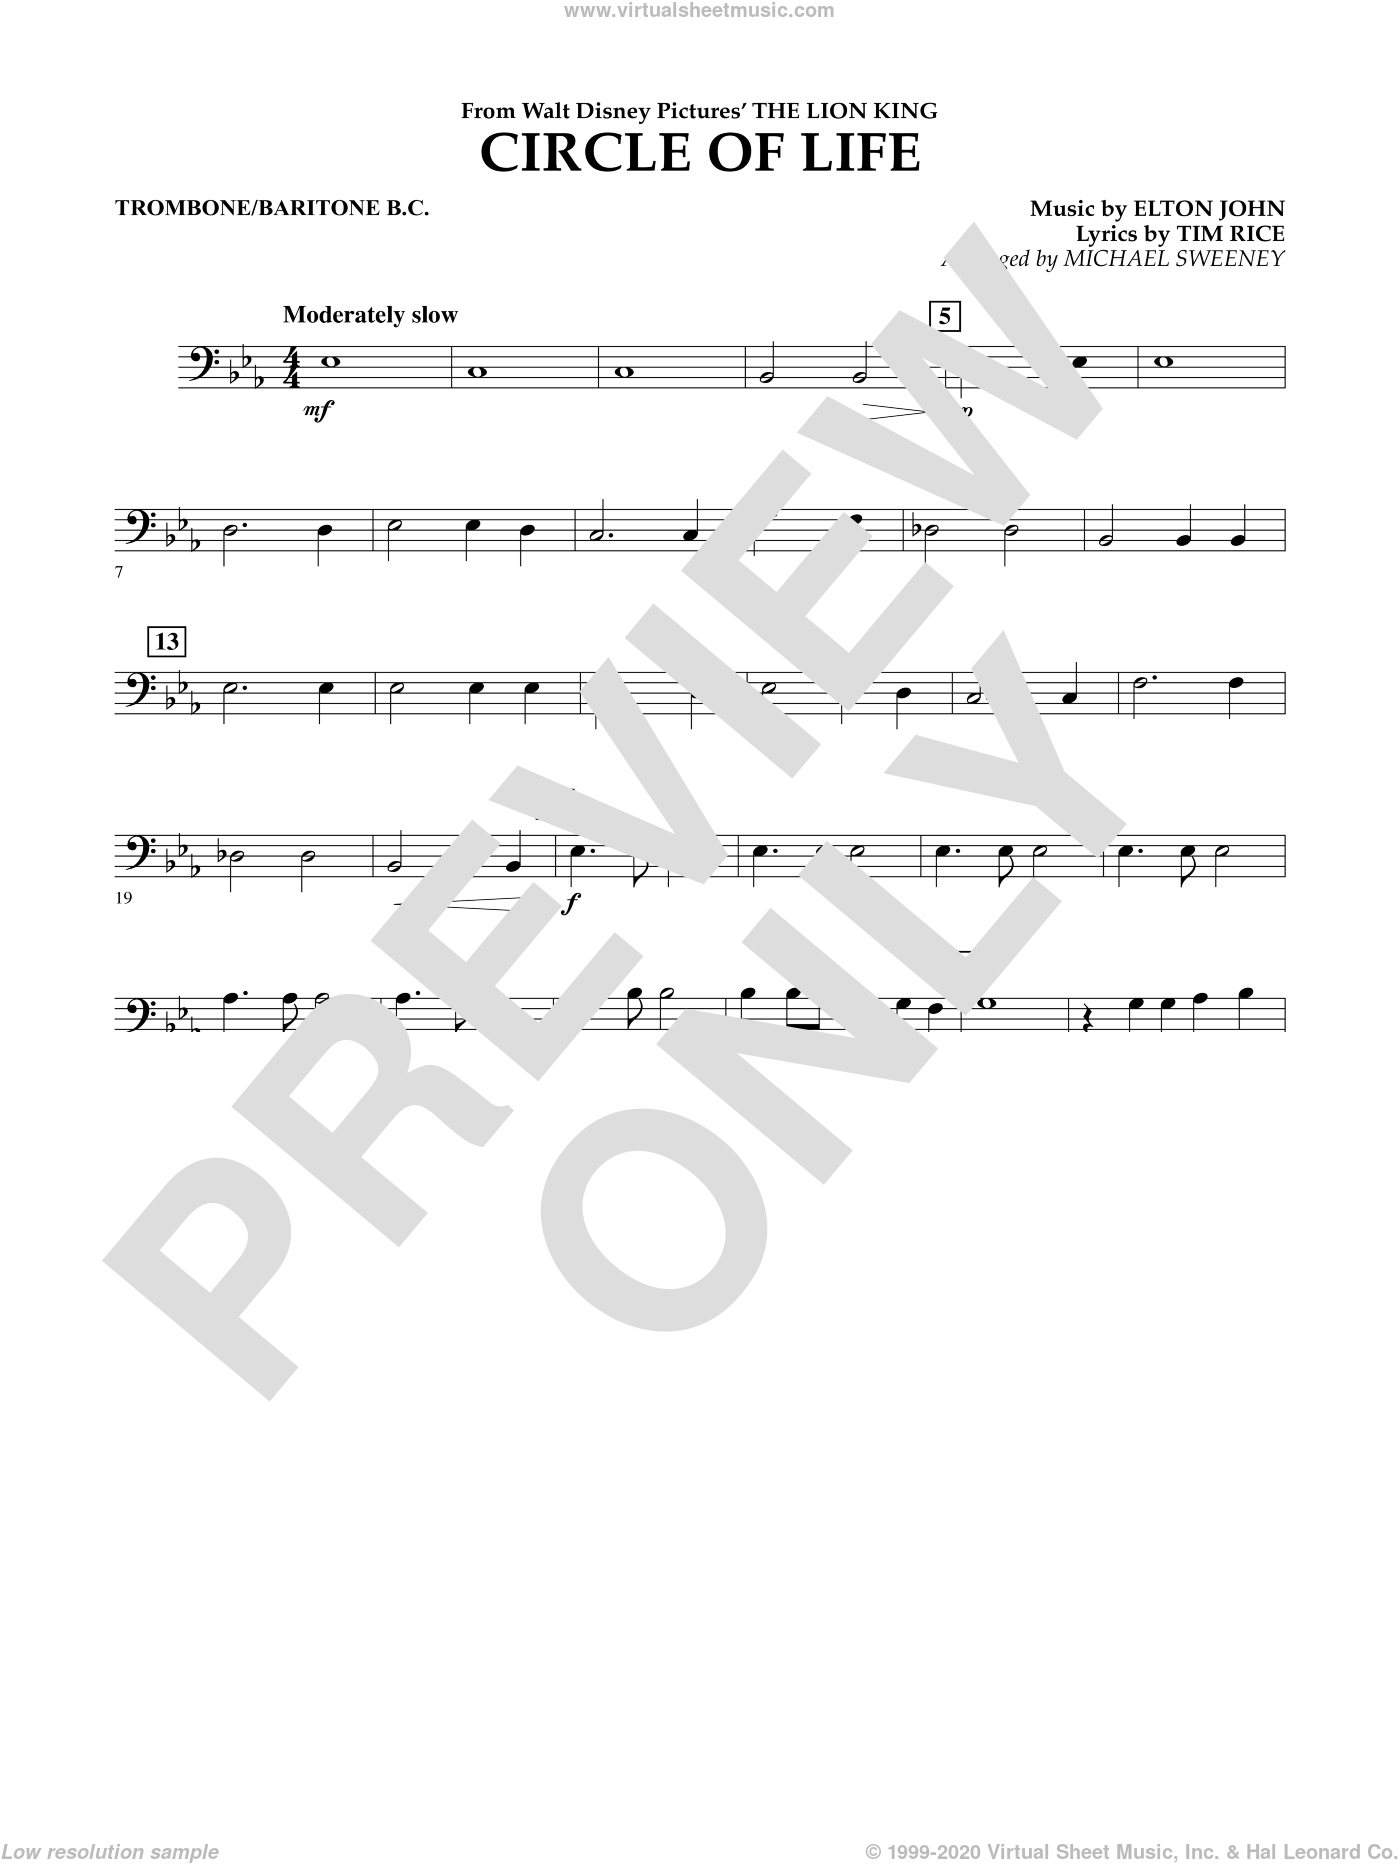 Circle of Life (from The Lion King) sheet music for concert band (trombone/baritone b.c.) by Elton John, Michael Sweeney and Tim Rice, intermediate